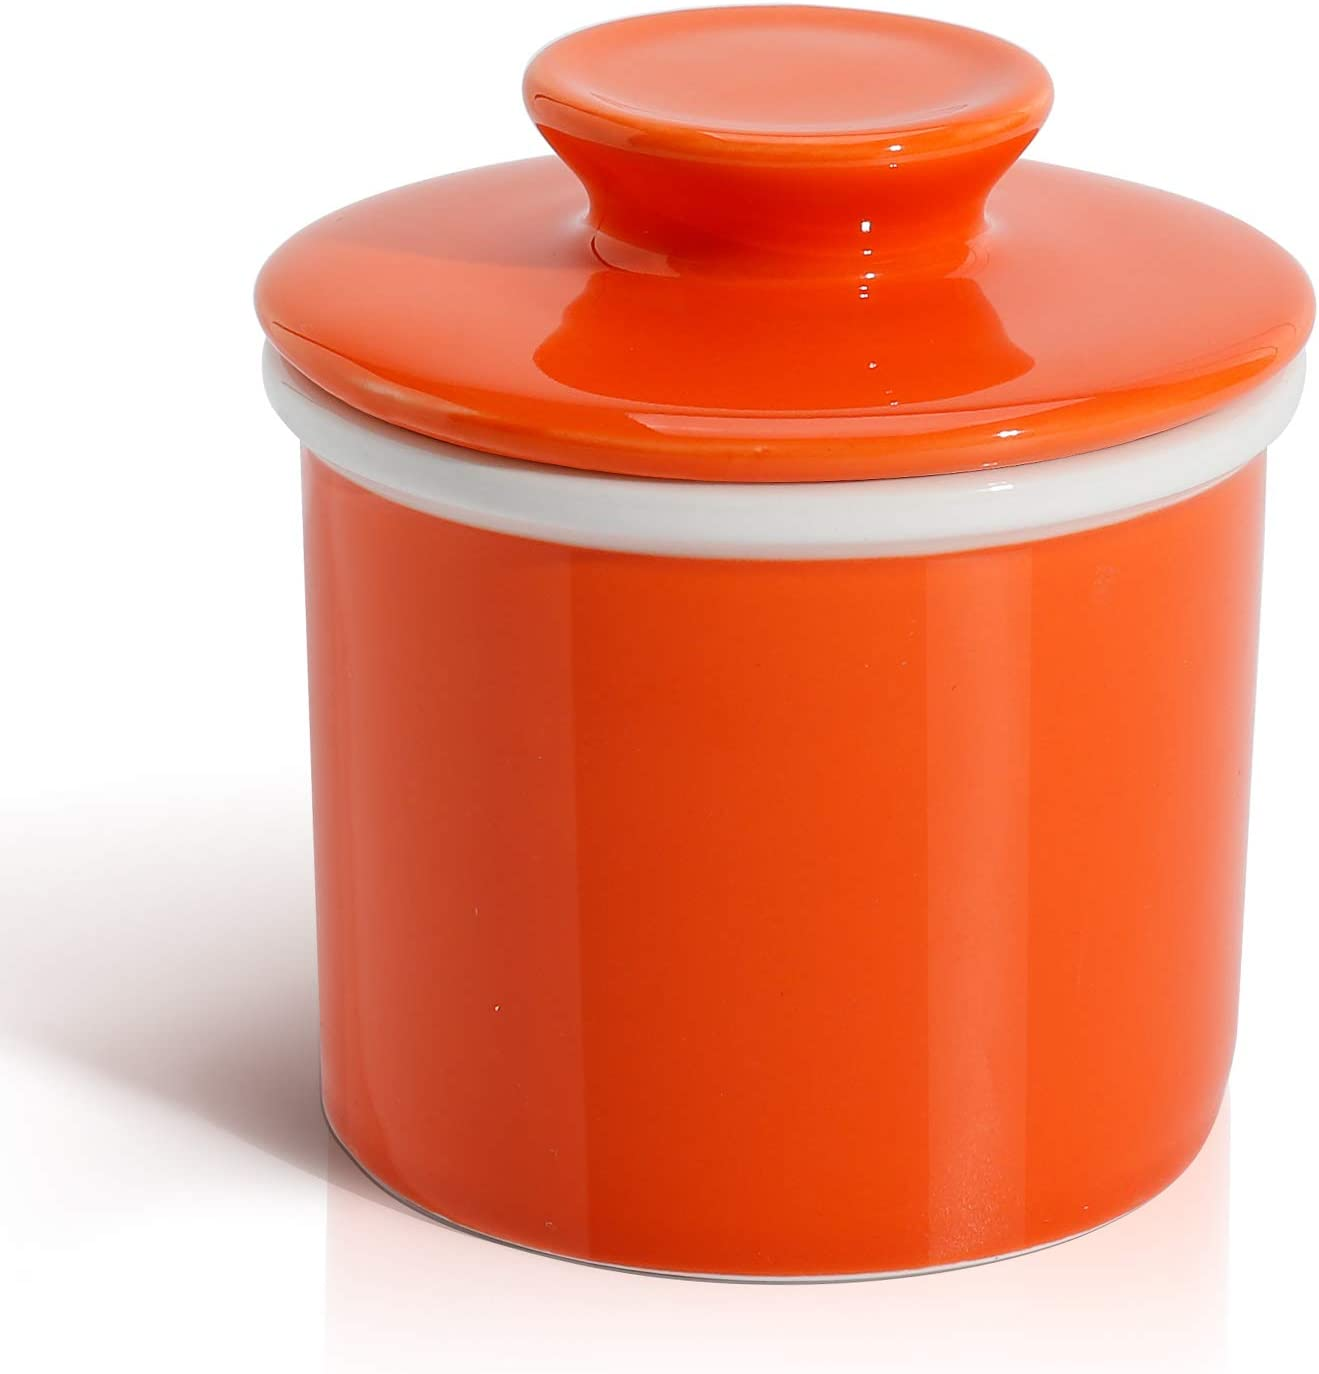 Sweese 305.106 Porcelain Butter Keeper Crock - French Butter Dish - No More Hard Butter - Perfect Spreadable Consistency, Orange